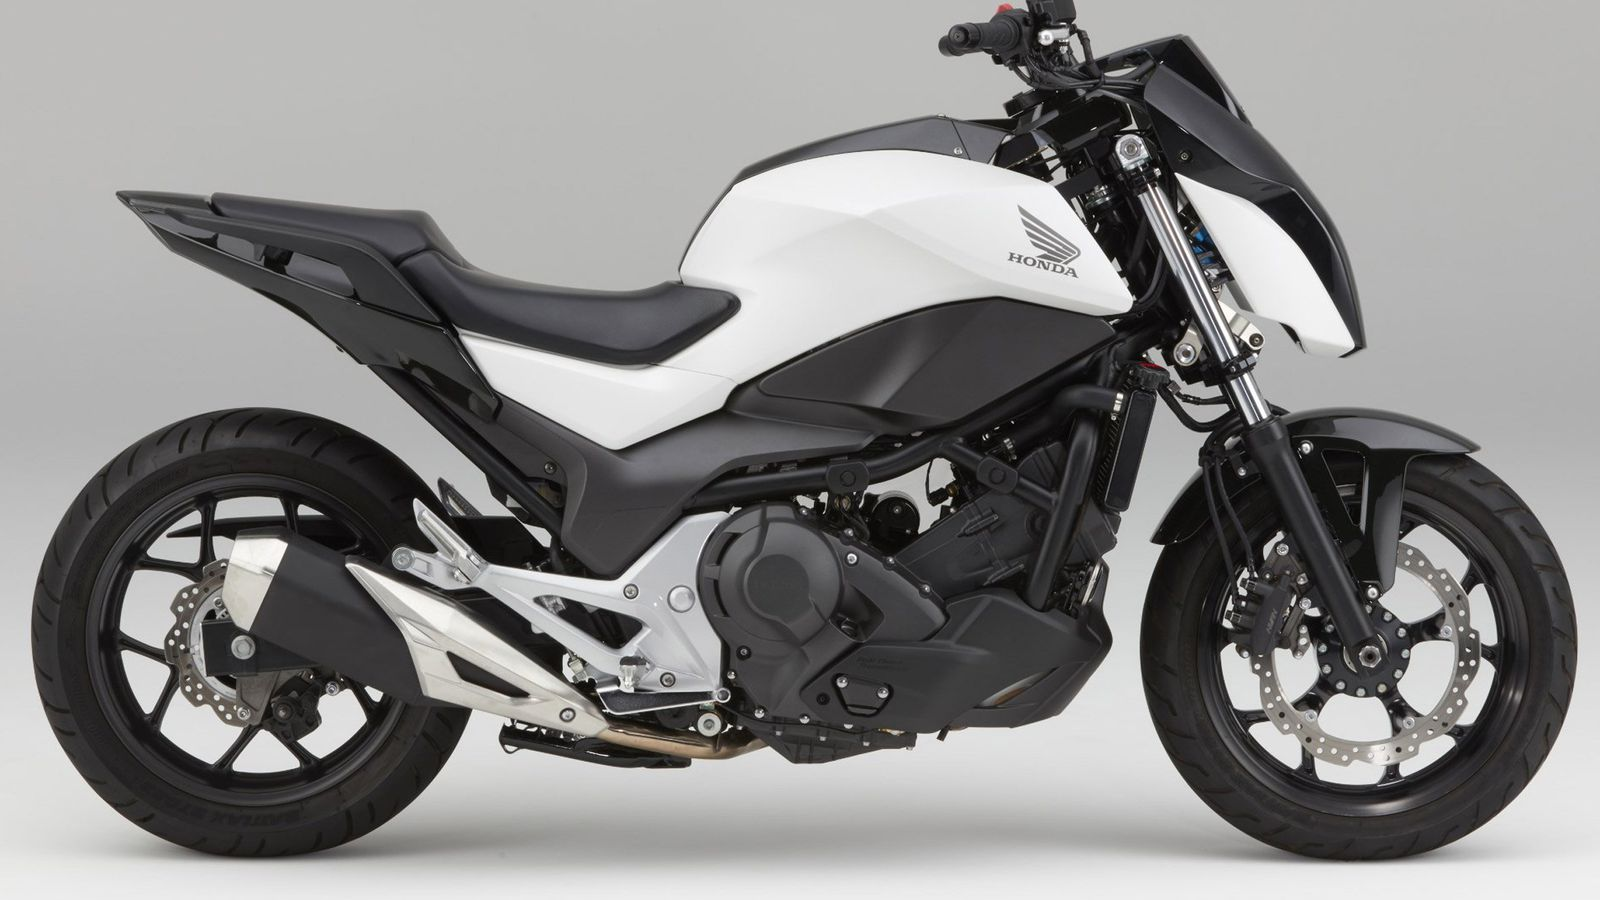 honda s new motorcycle can drive itself curbed. Black Bedroom Furniture Sets. Home Design Ideas